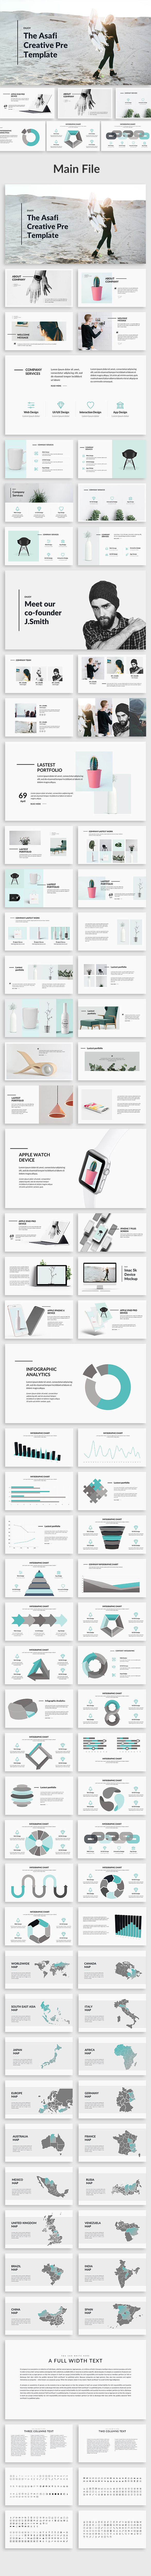 Asafi - Creative Powerpoint Template - Creative PowerPoint Templates